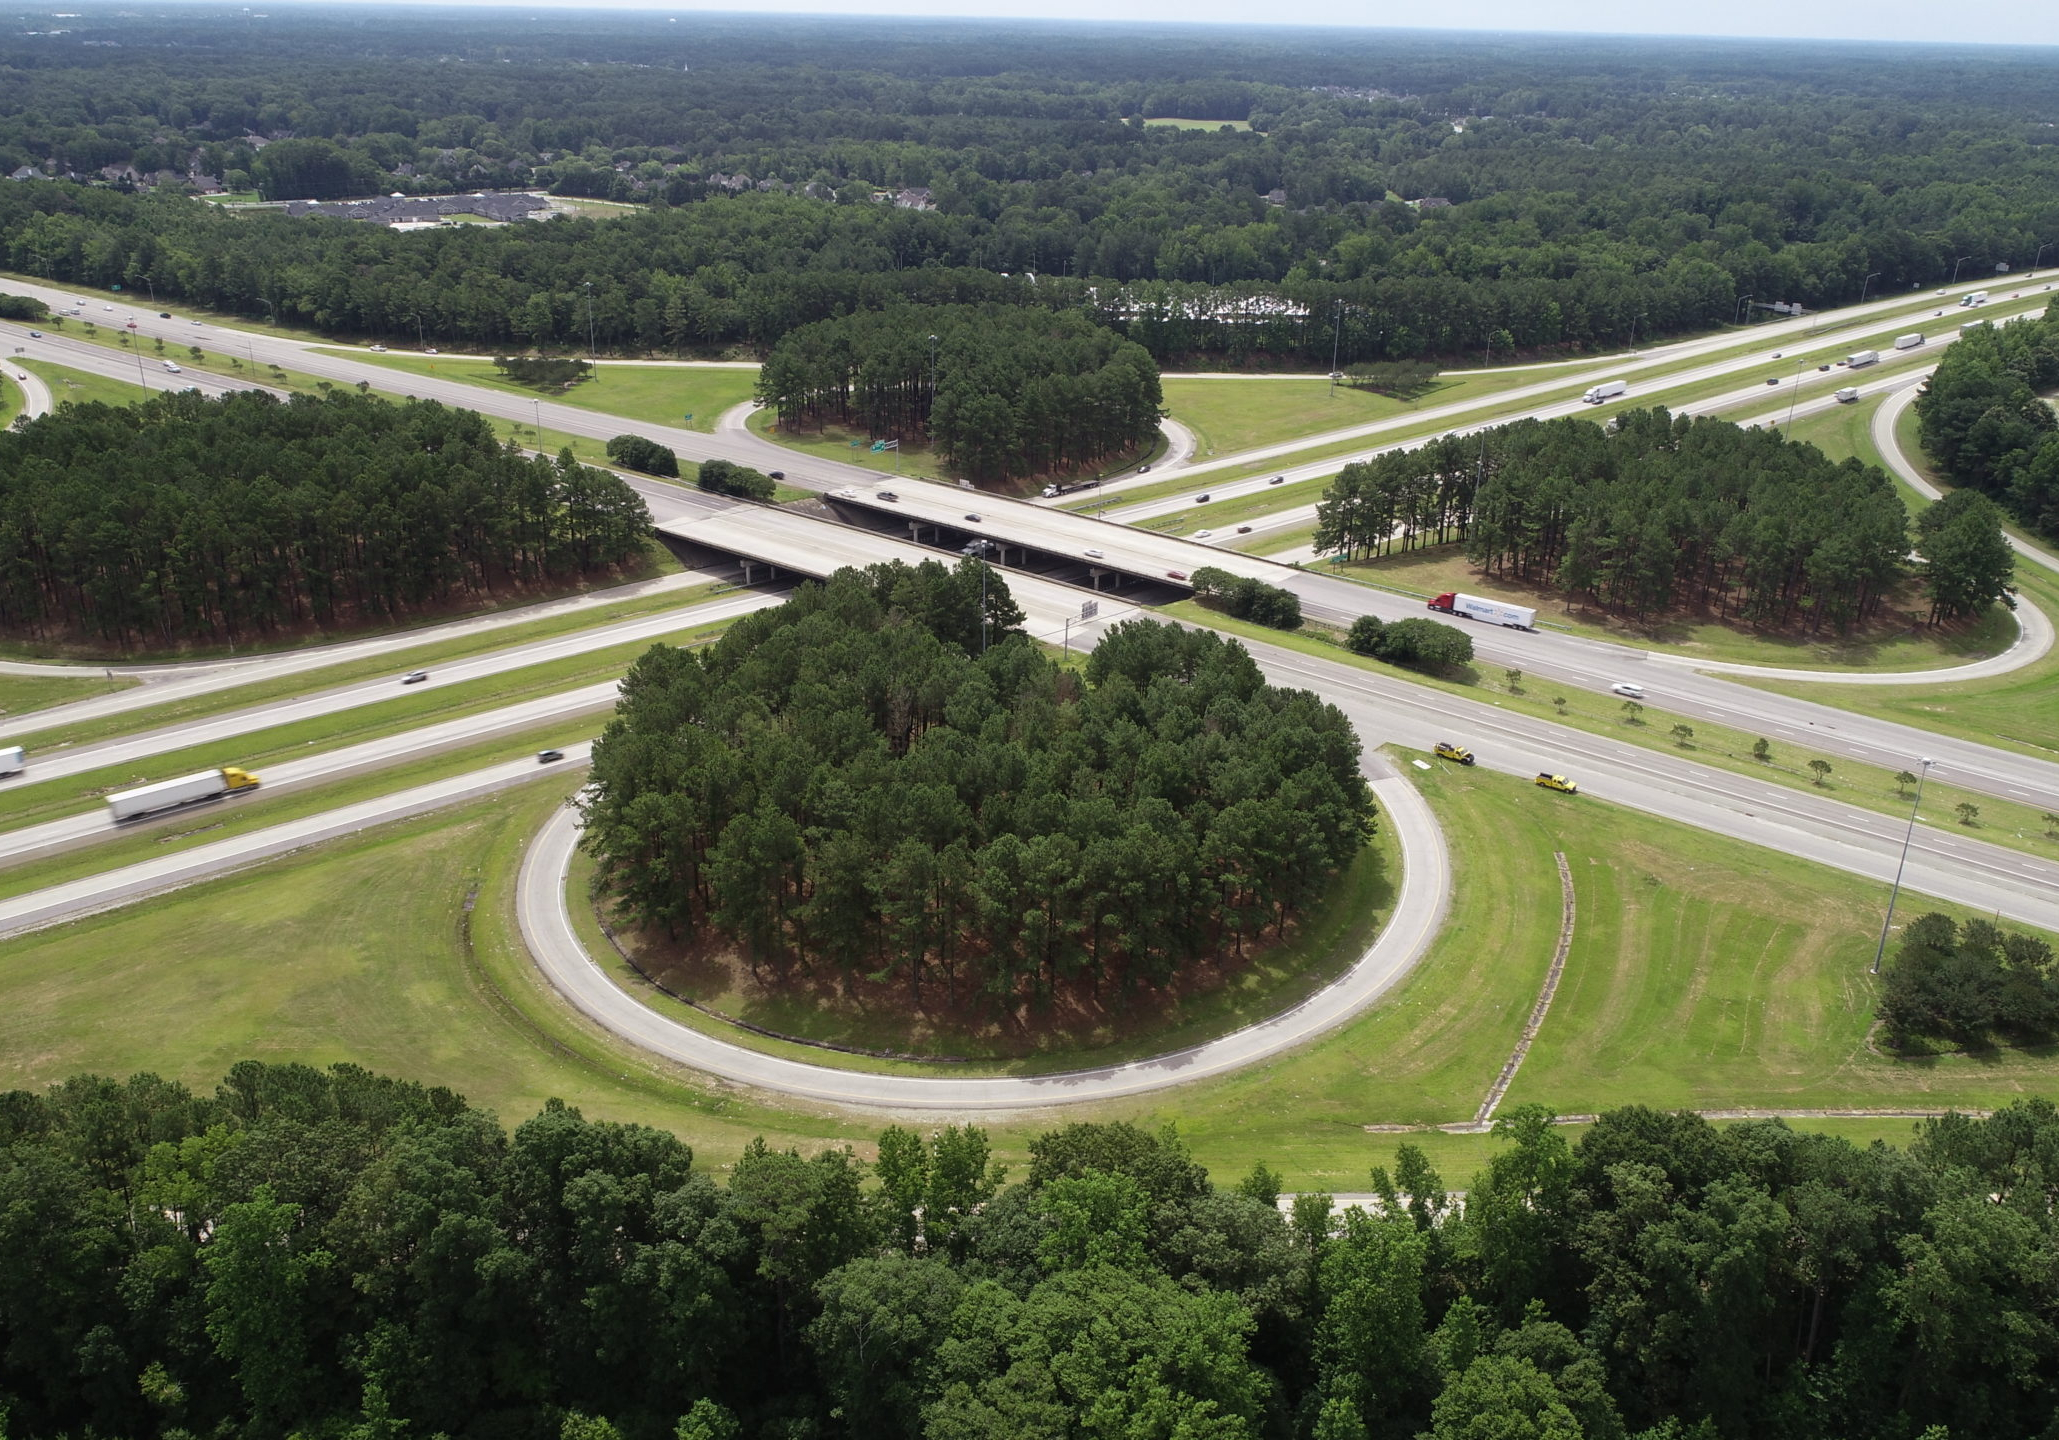 Aerial view of Interstate 95 and US Highway 64 interchange.